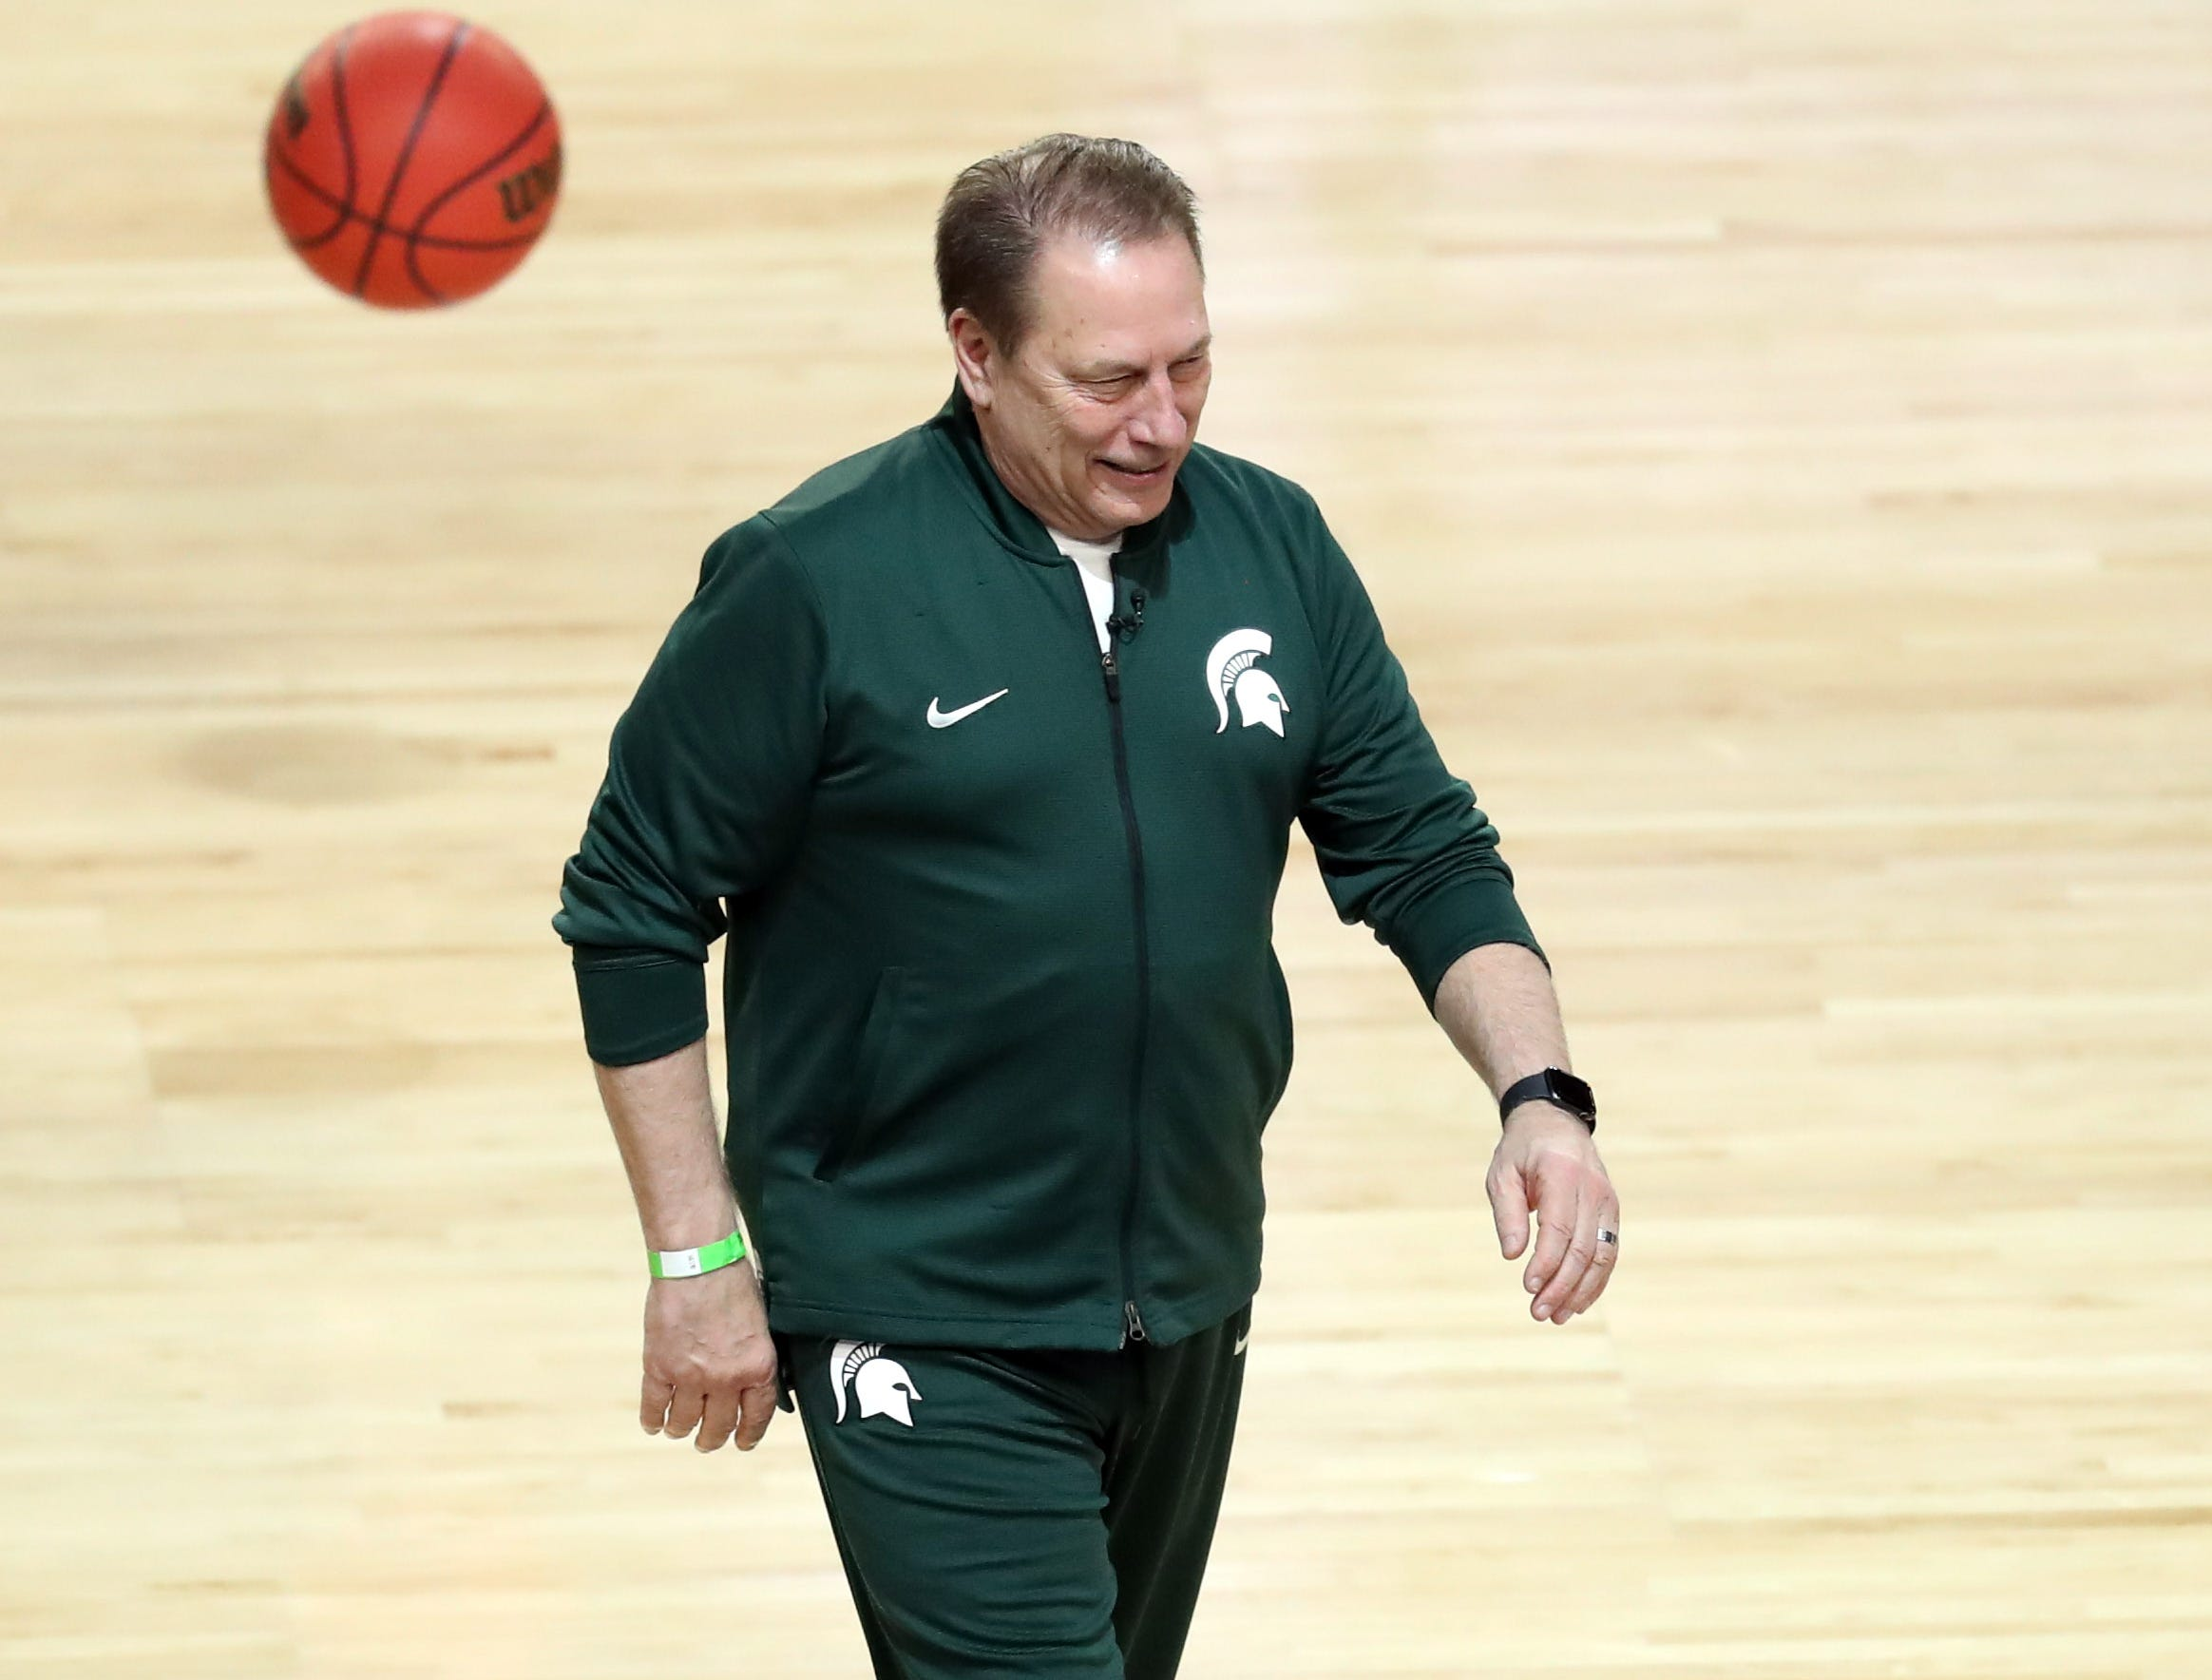 Apr 5, 2019; Minneapolis, MN, USA; Michigan State Spartans head coach Tom Izzo walks onto the court during practice for the 2019 men's Final Four at US Bank Stadium. Mandatory Credit: Brace Hemmelgarn-USA TODAY Sports